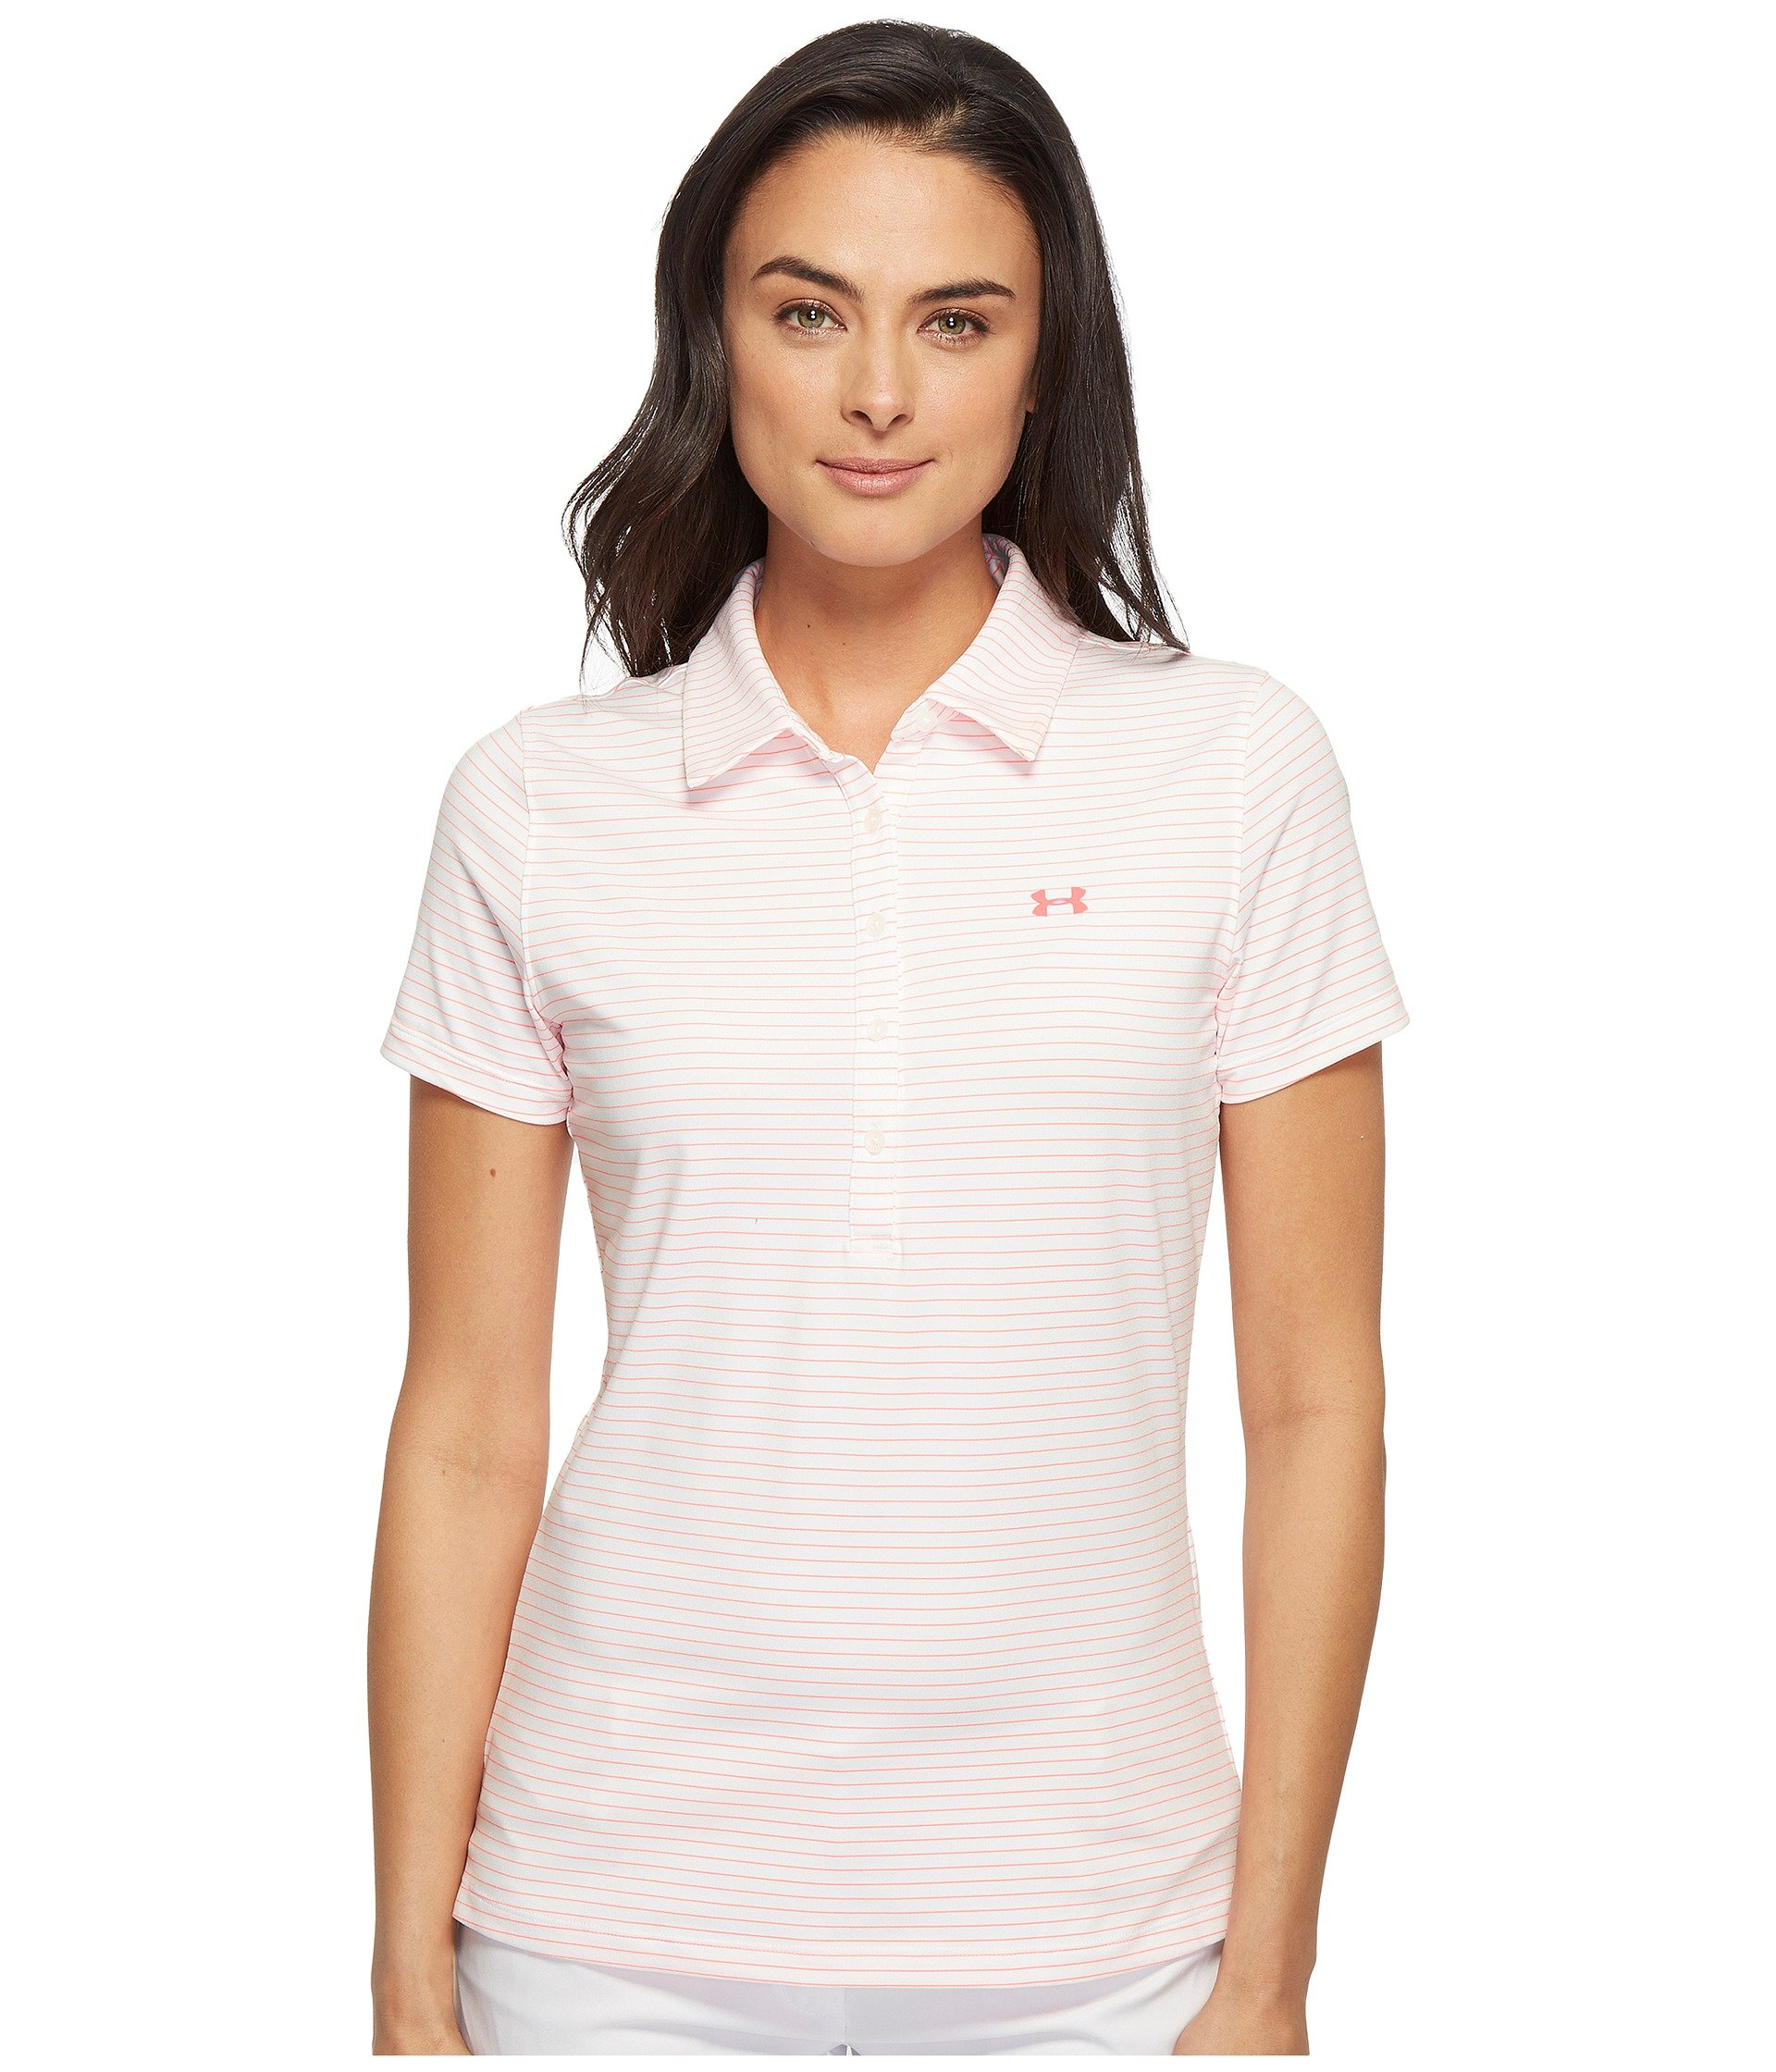 Camiseta Tipo Polo para Mujer Under Armour Golf Zinger Stripe Polo  + Under Armour en VeoyCompro.net